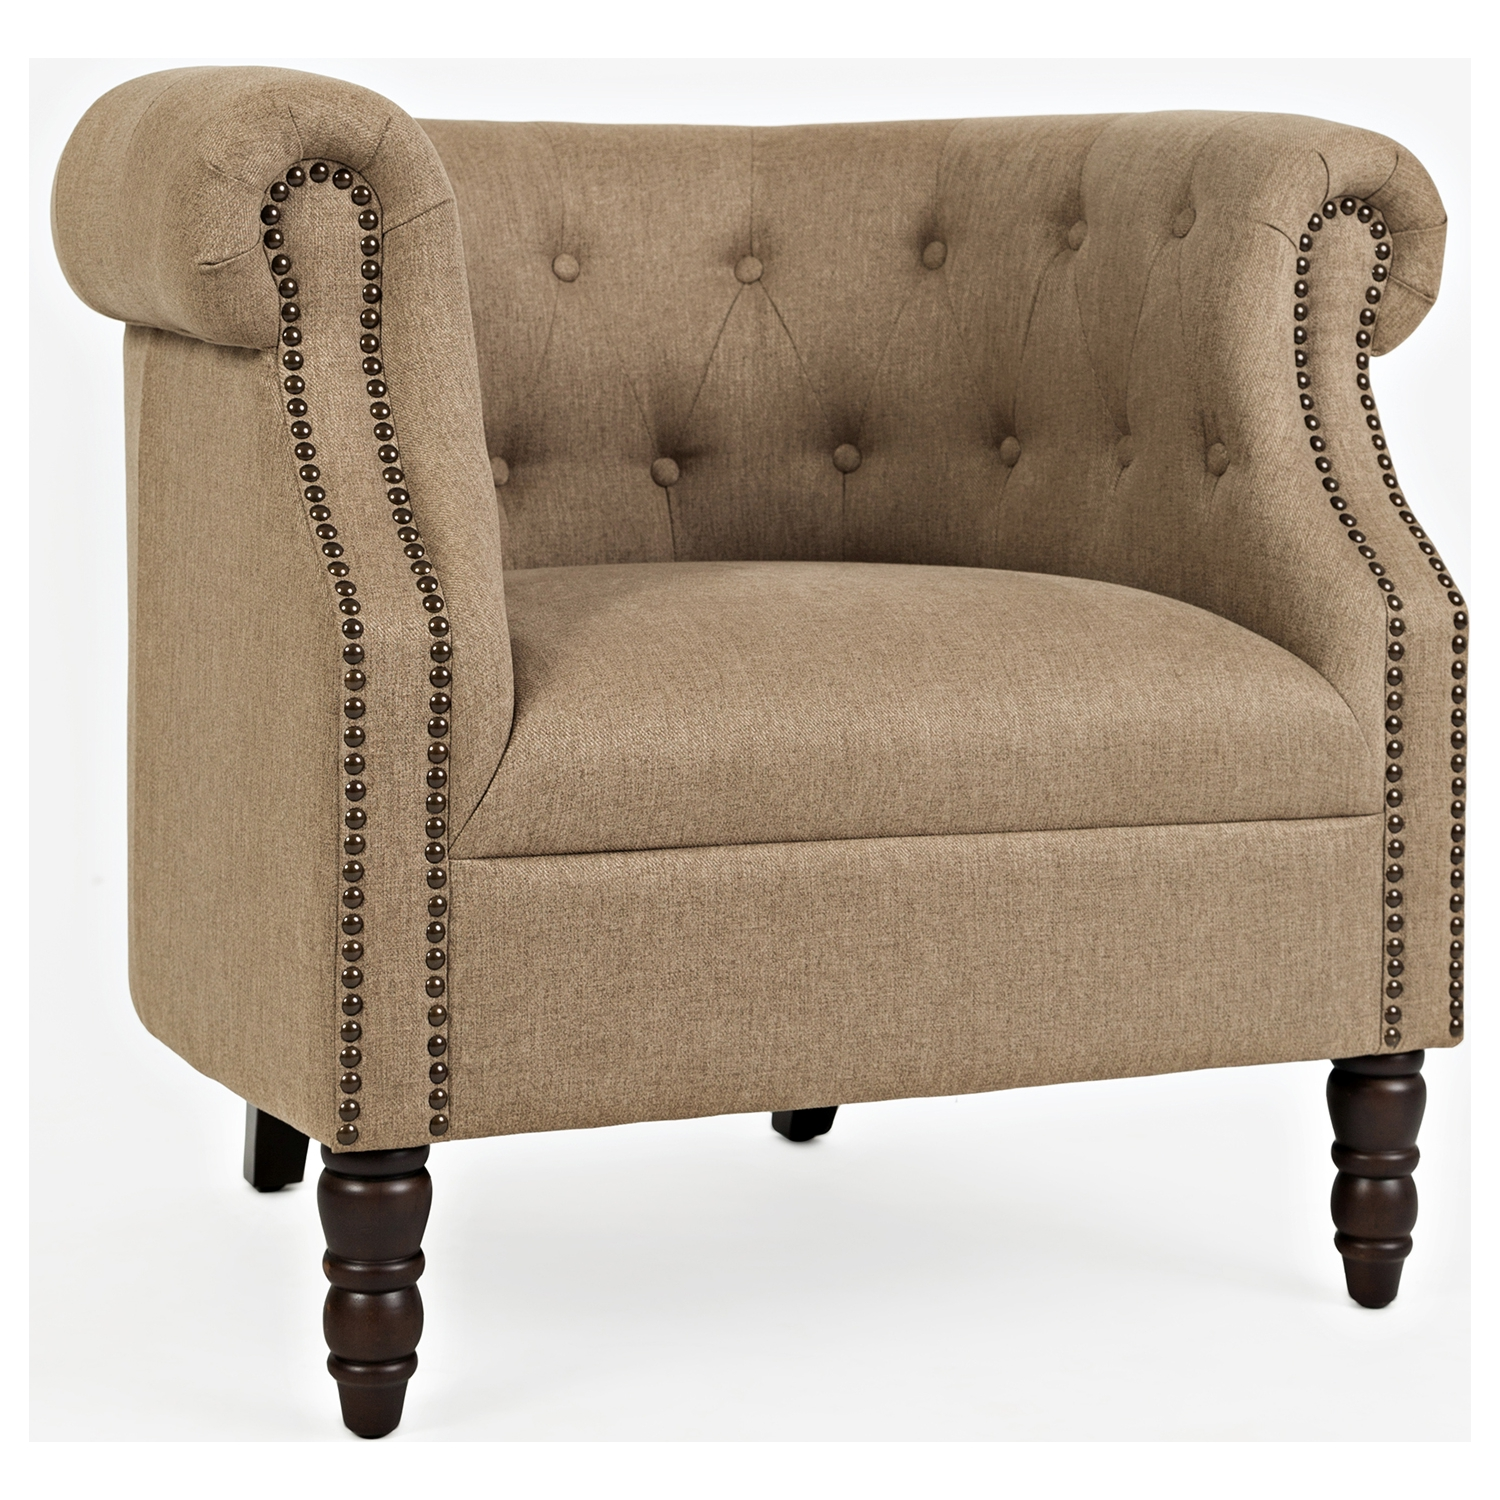 Jofran GRACE CH CHESTNUT Grace Accent Chair in Tufted Easy Living